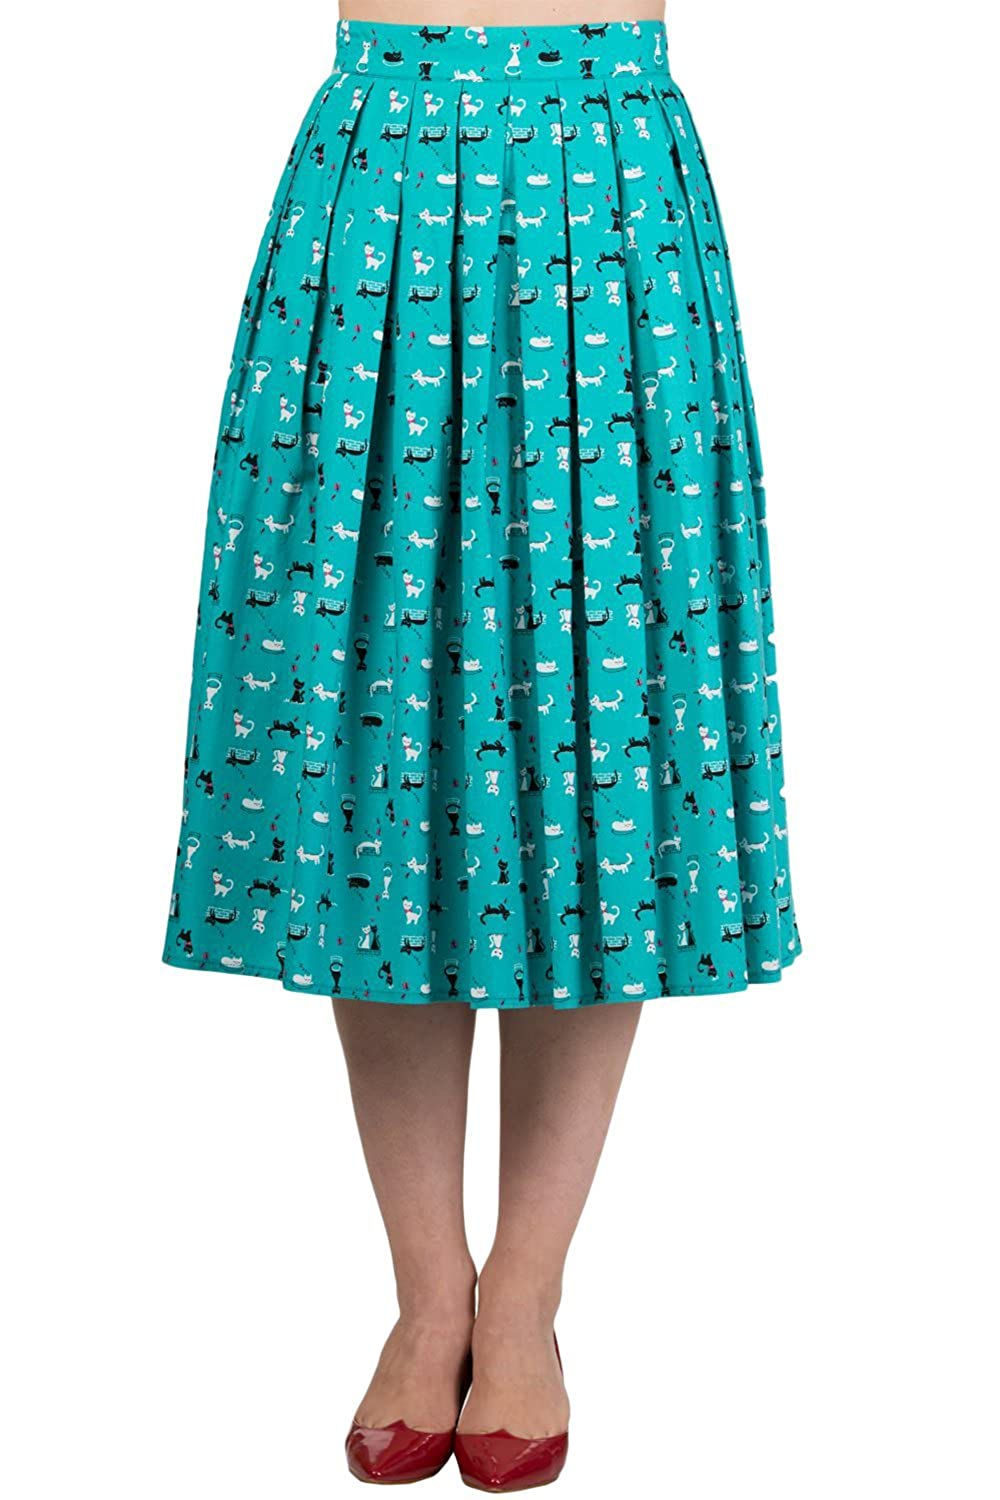 Banned 60's Retro Kitty Love Vintage Kitty cat Midi Pleated skirt